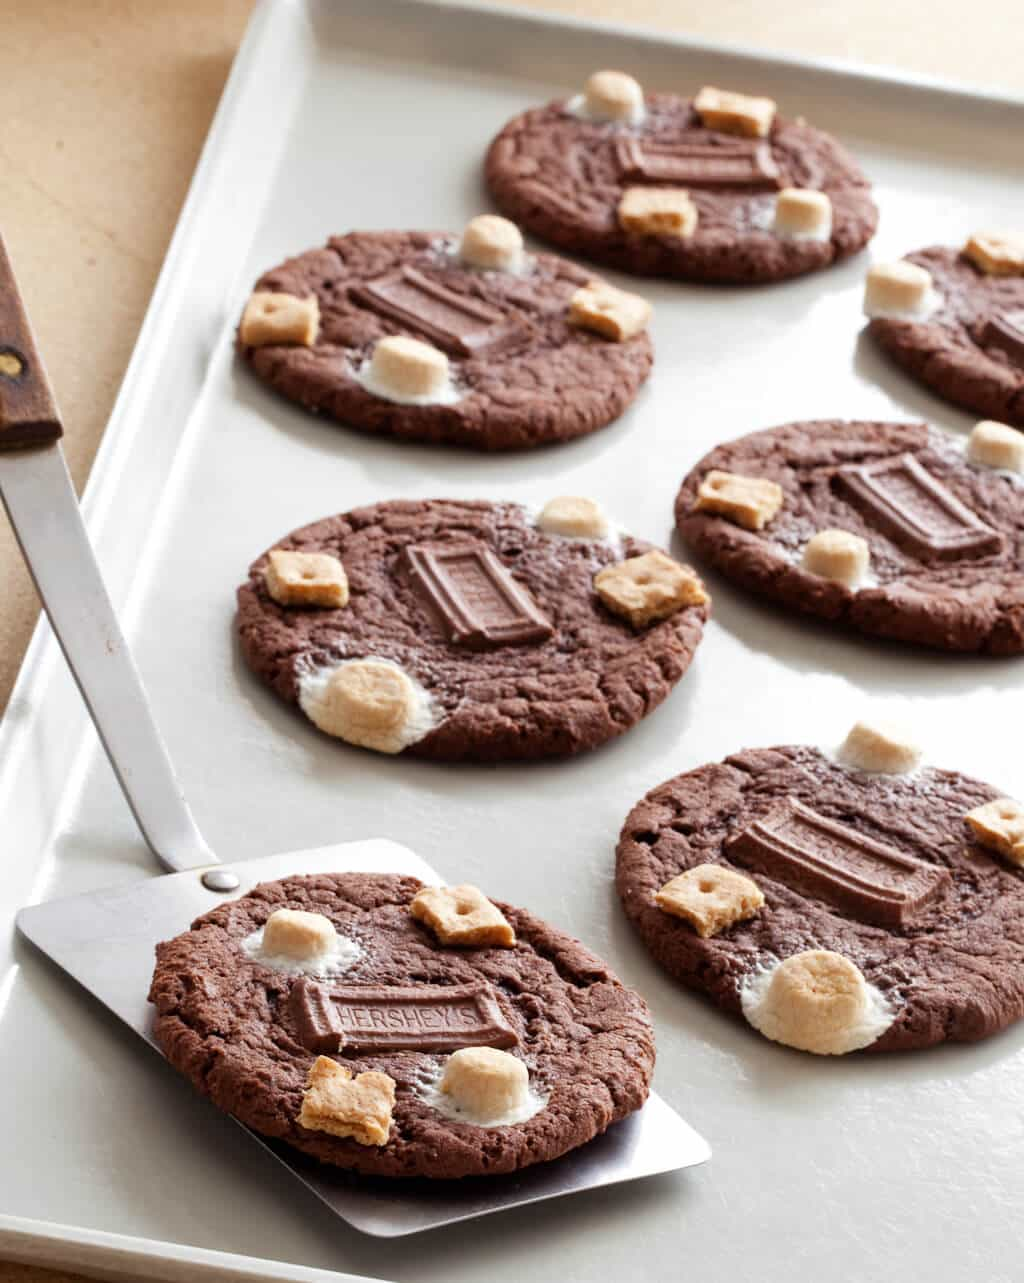 Chocolate Cake S'mores Cookies - Steamy Kitchen Recipes